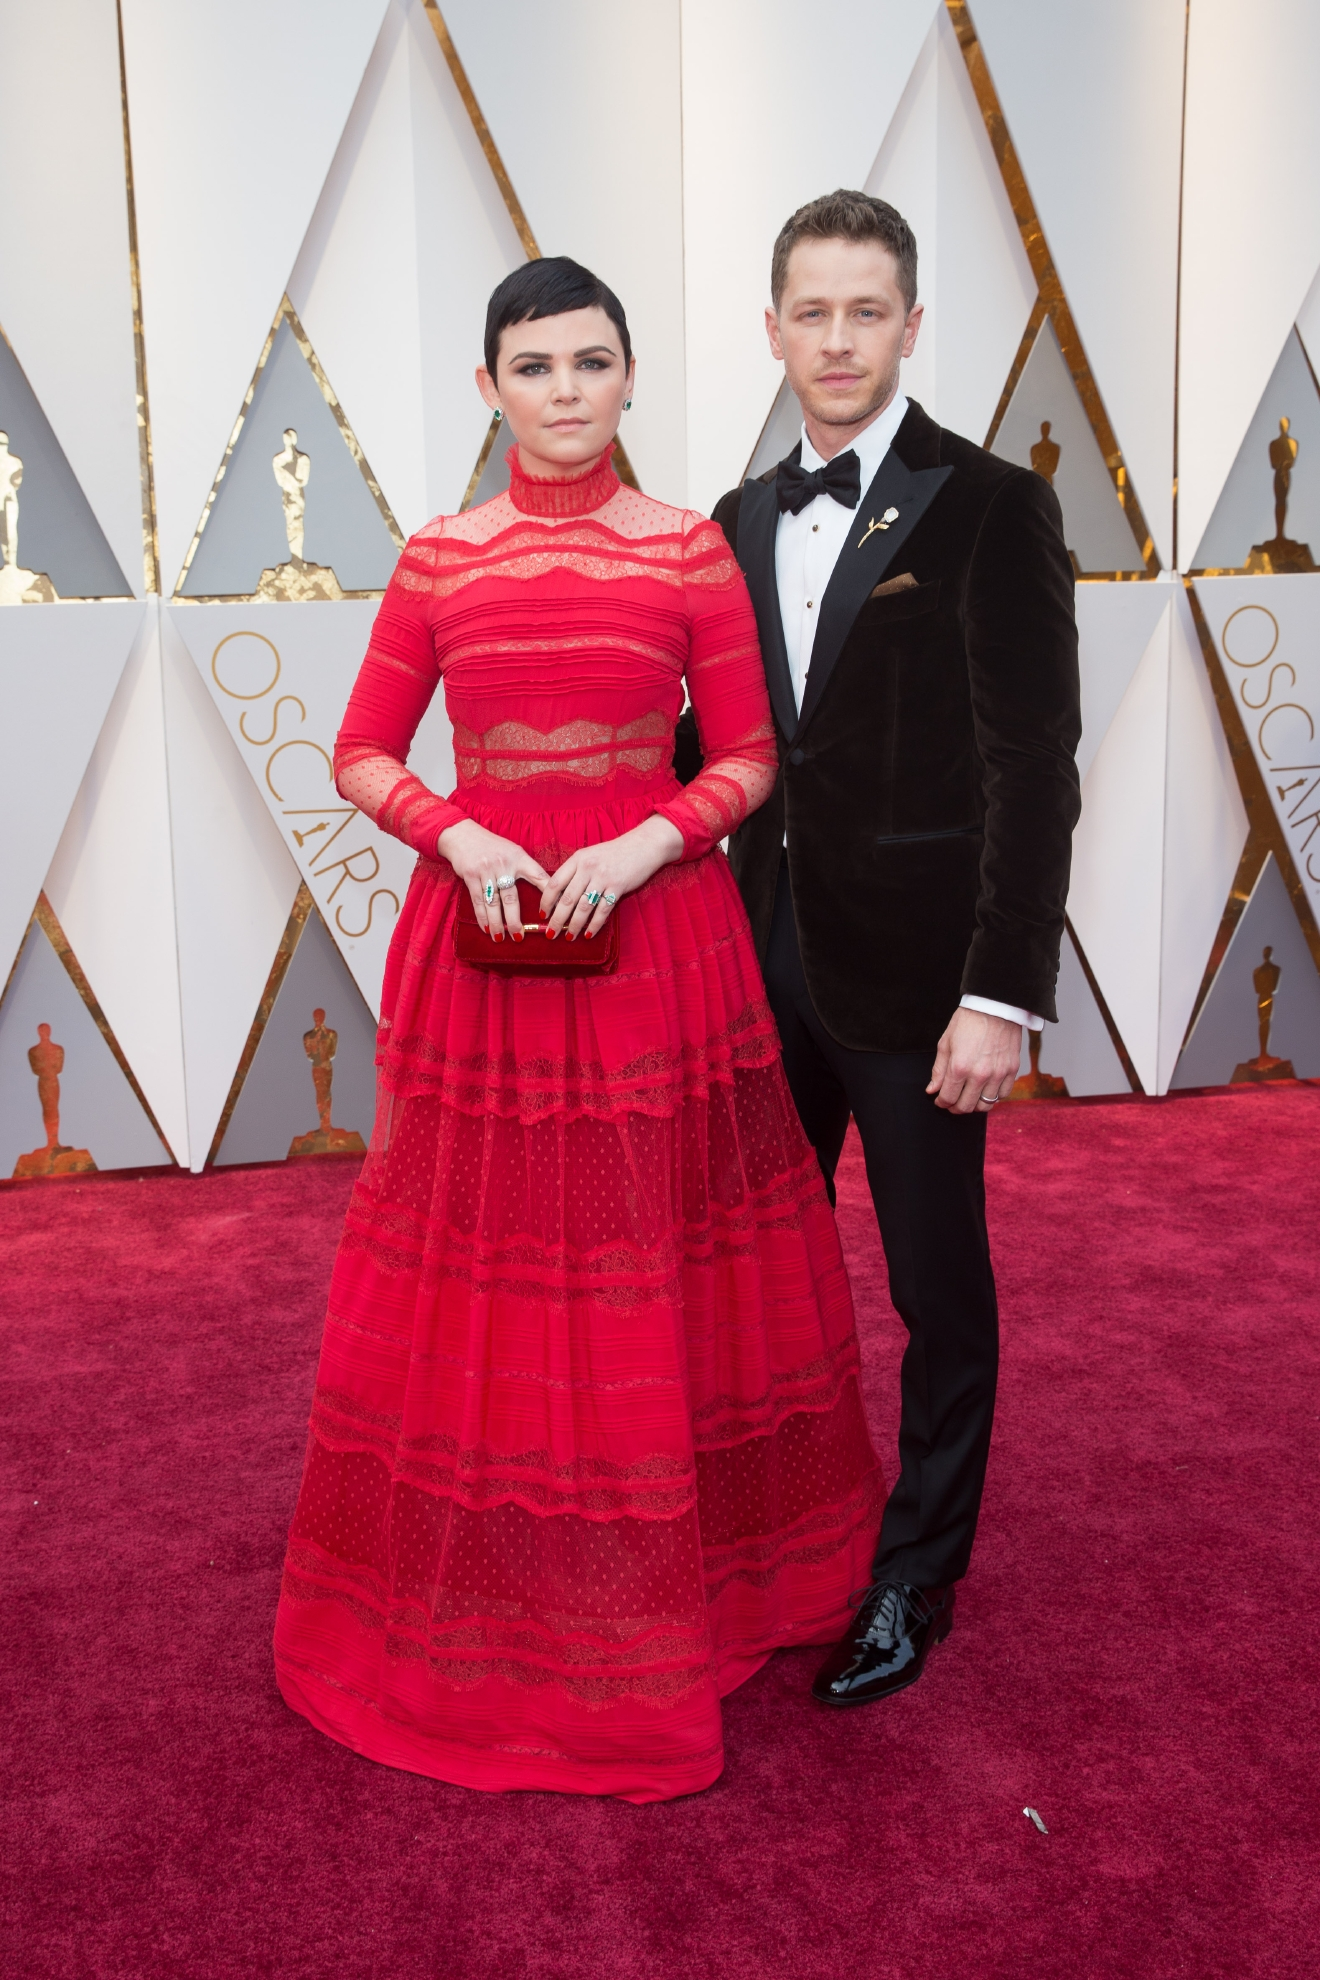 Ginnifer Goodwin and Josh Dallas arrives on the red carpet of The 89th Oscars® at the Dolby® Theatre in Hollywood, CA on Sunday, February 26, 2017. (A.M.P.A.S.)